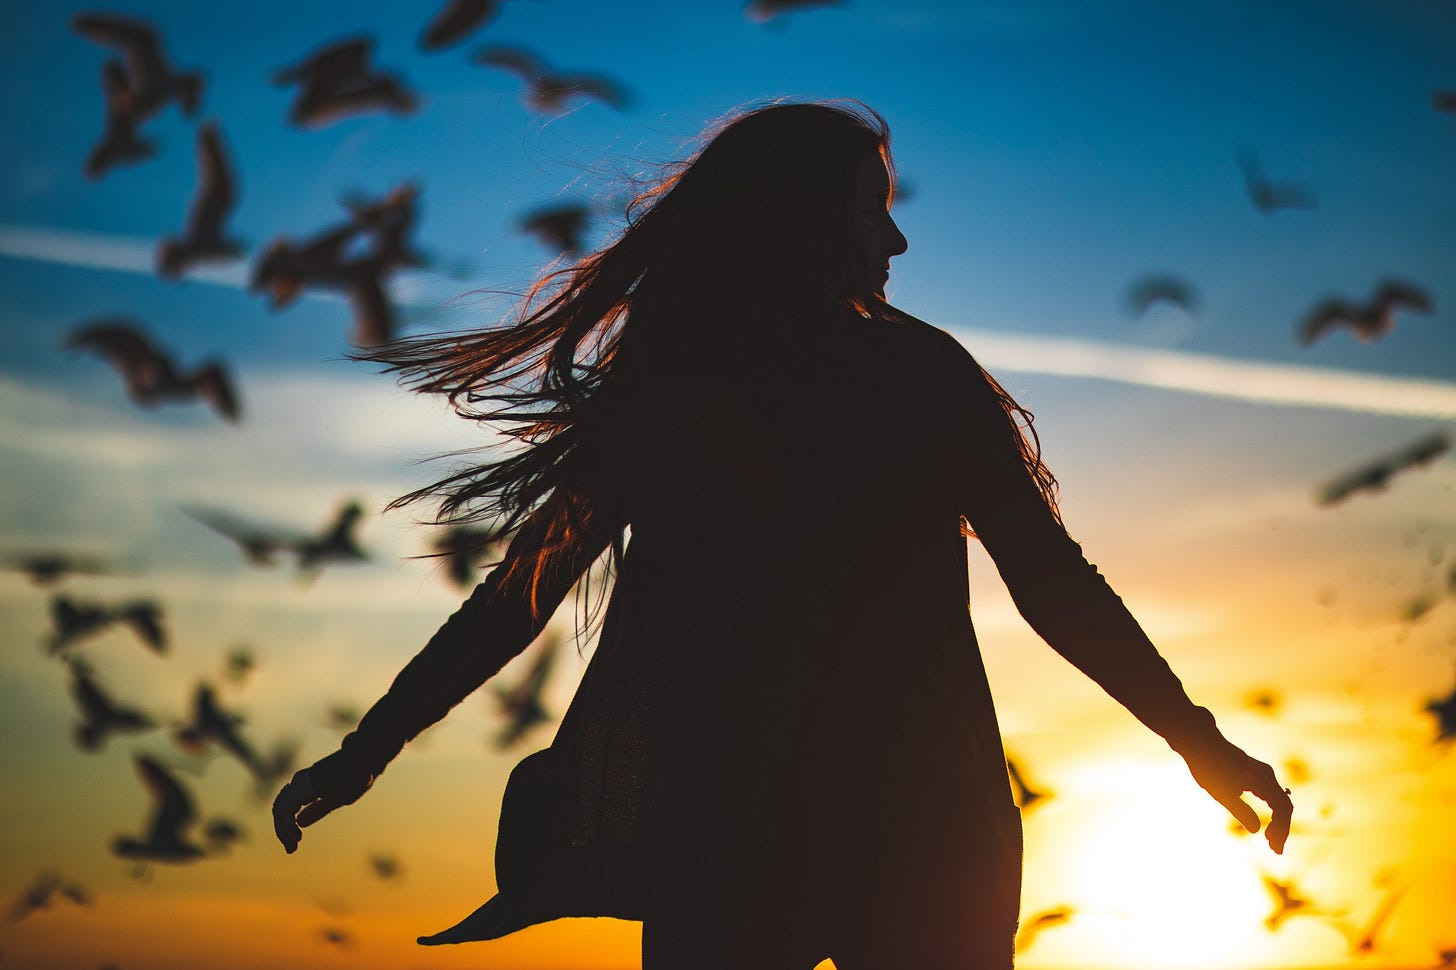 """silhouette of a woman against a setting sun with birds in the background for article titled """"Maslow Peak Experience"""""""